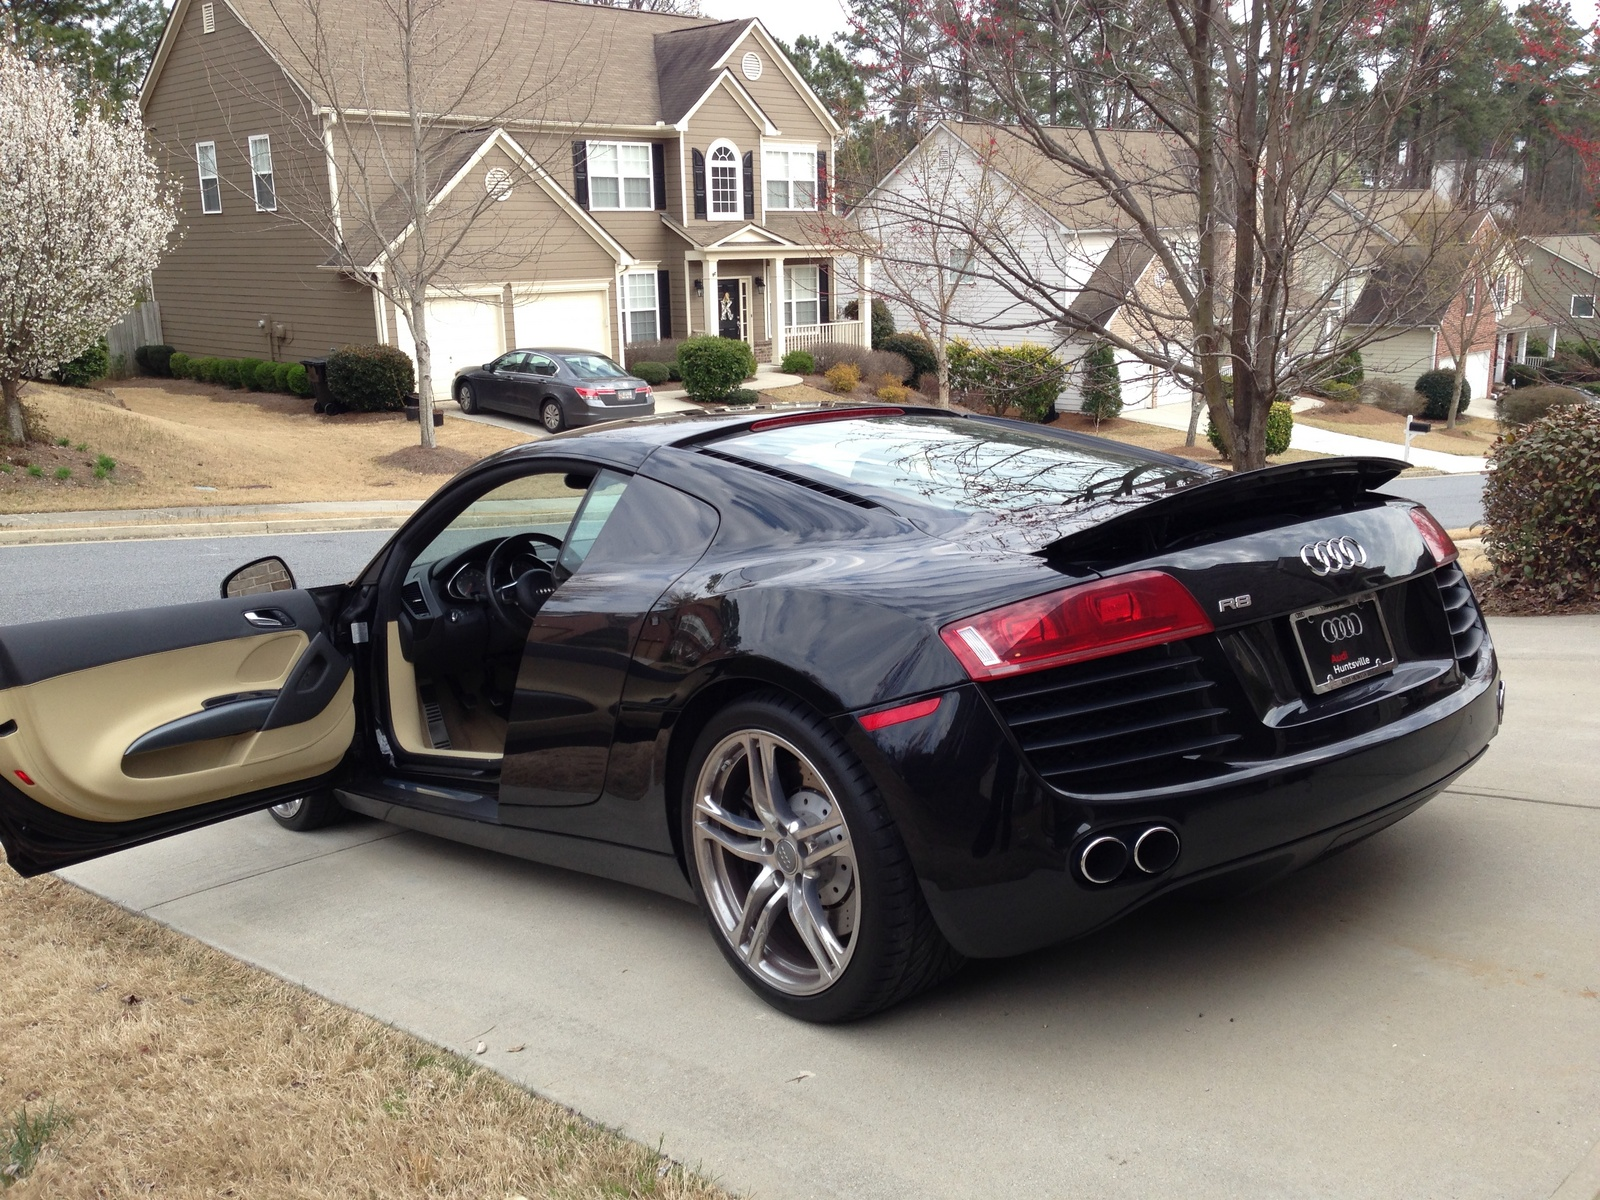 Used Audi R8 For Sale - CarGurus